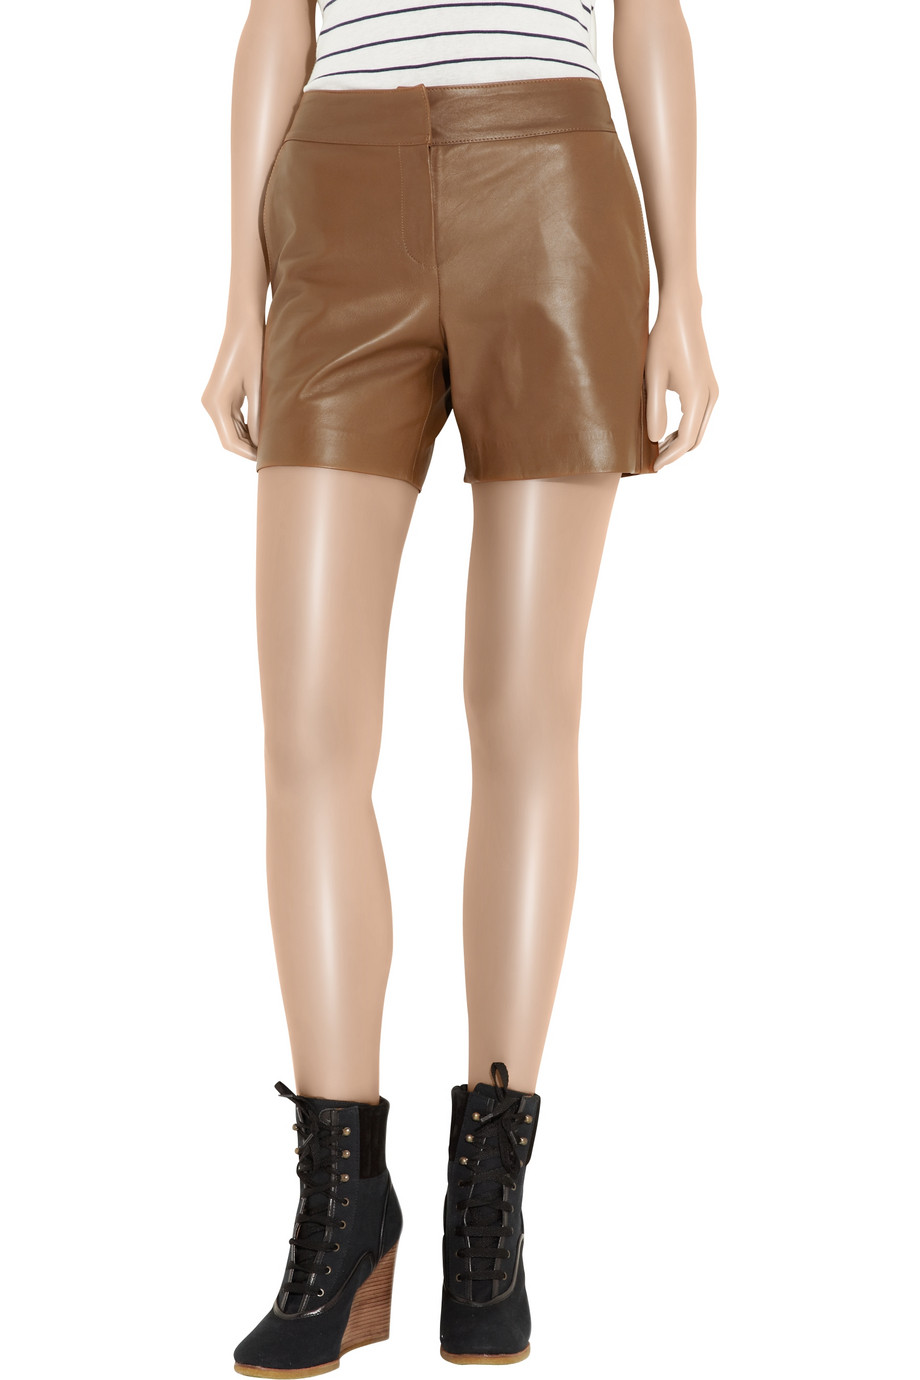 cafd4a05 See By Chloé Brown Leather Shorts